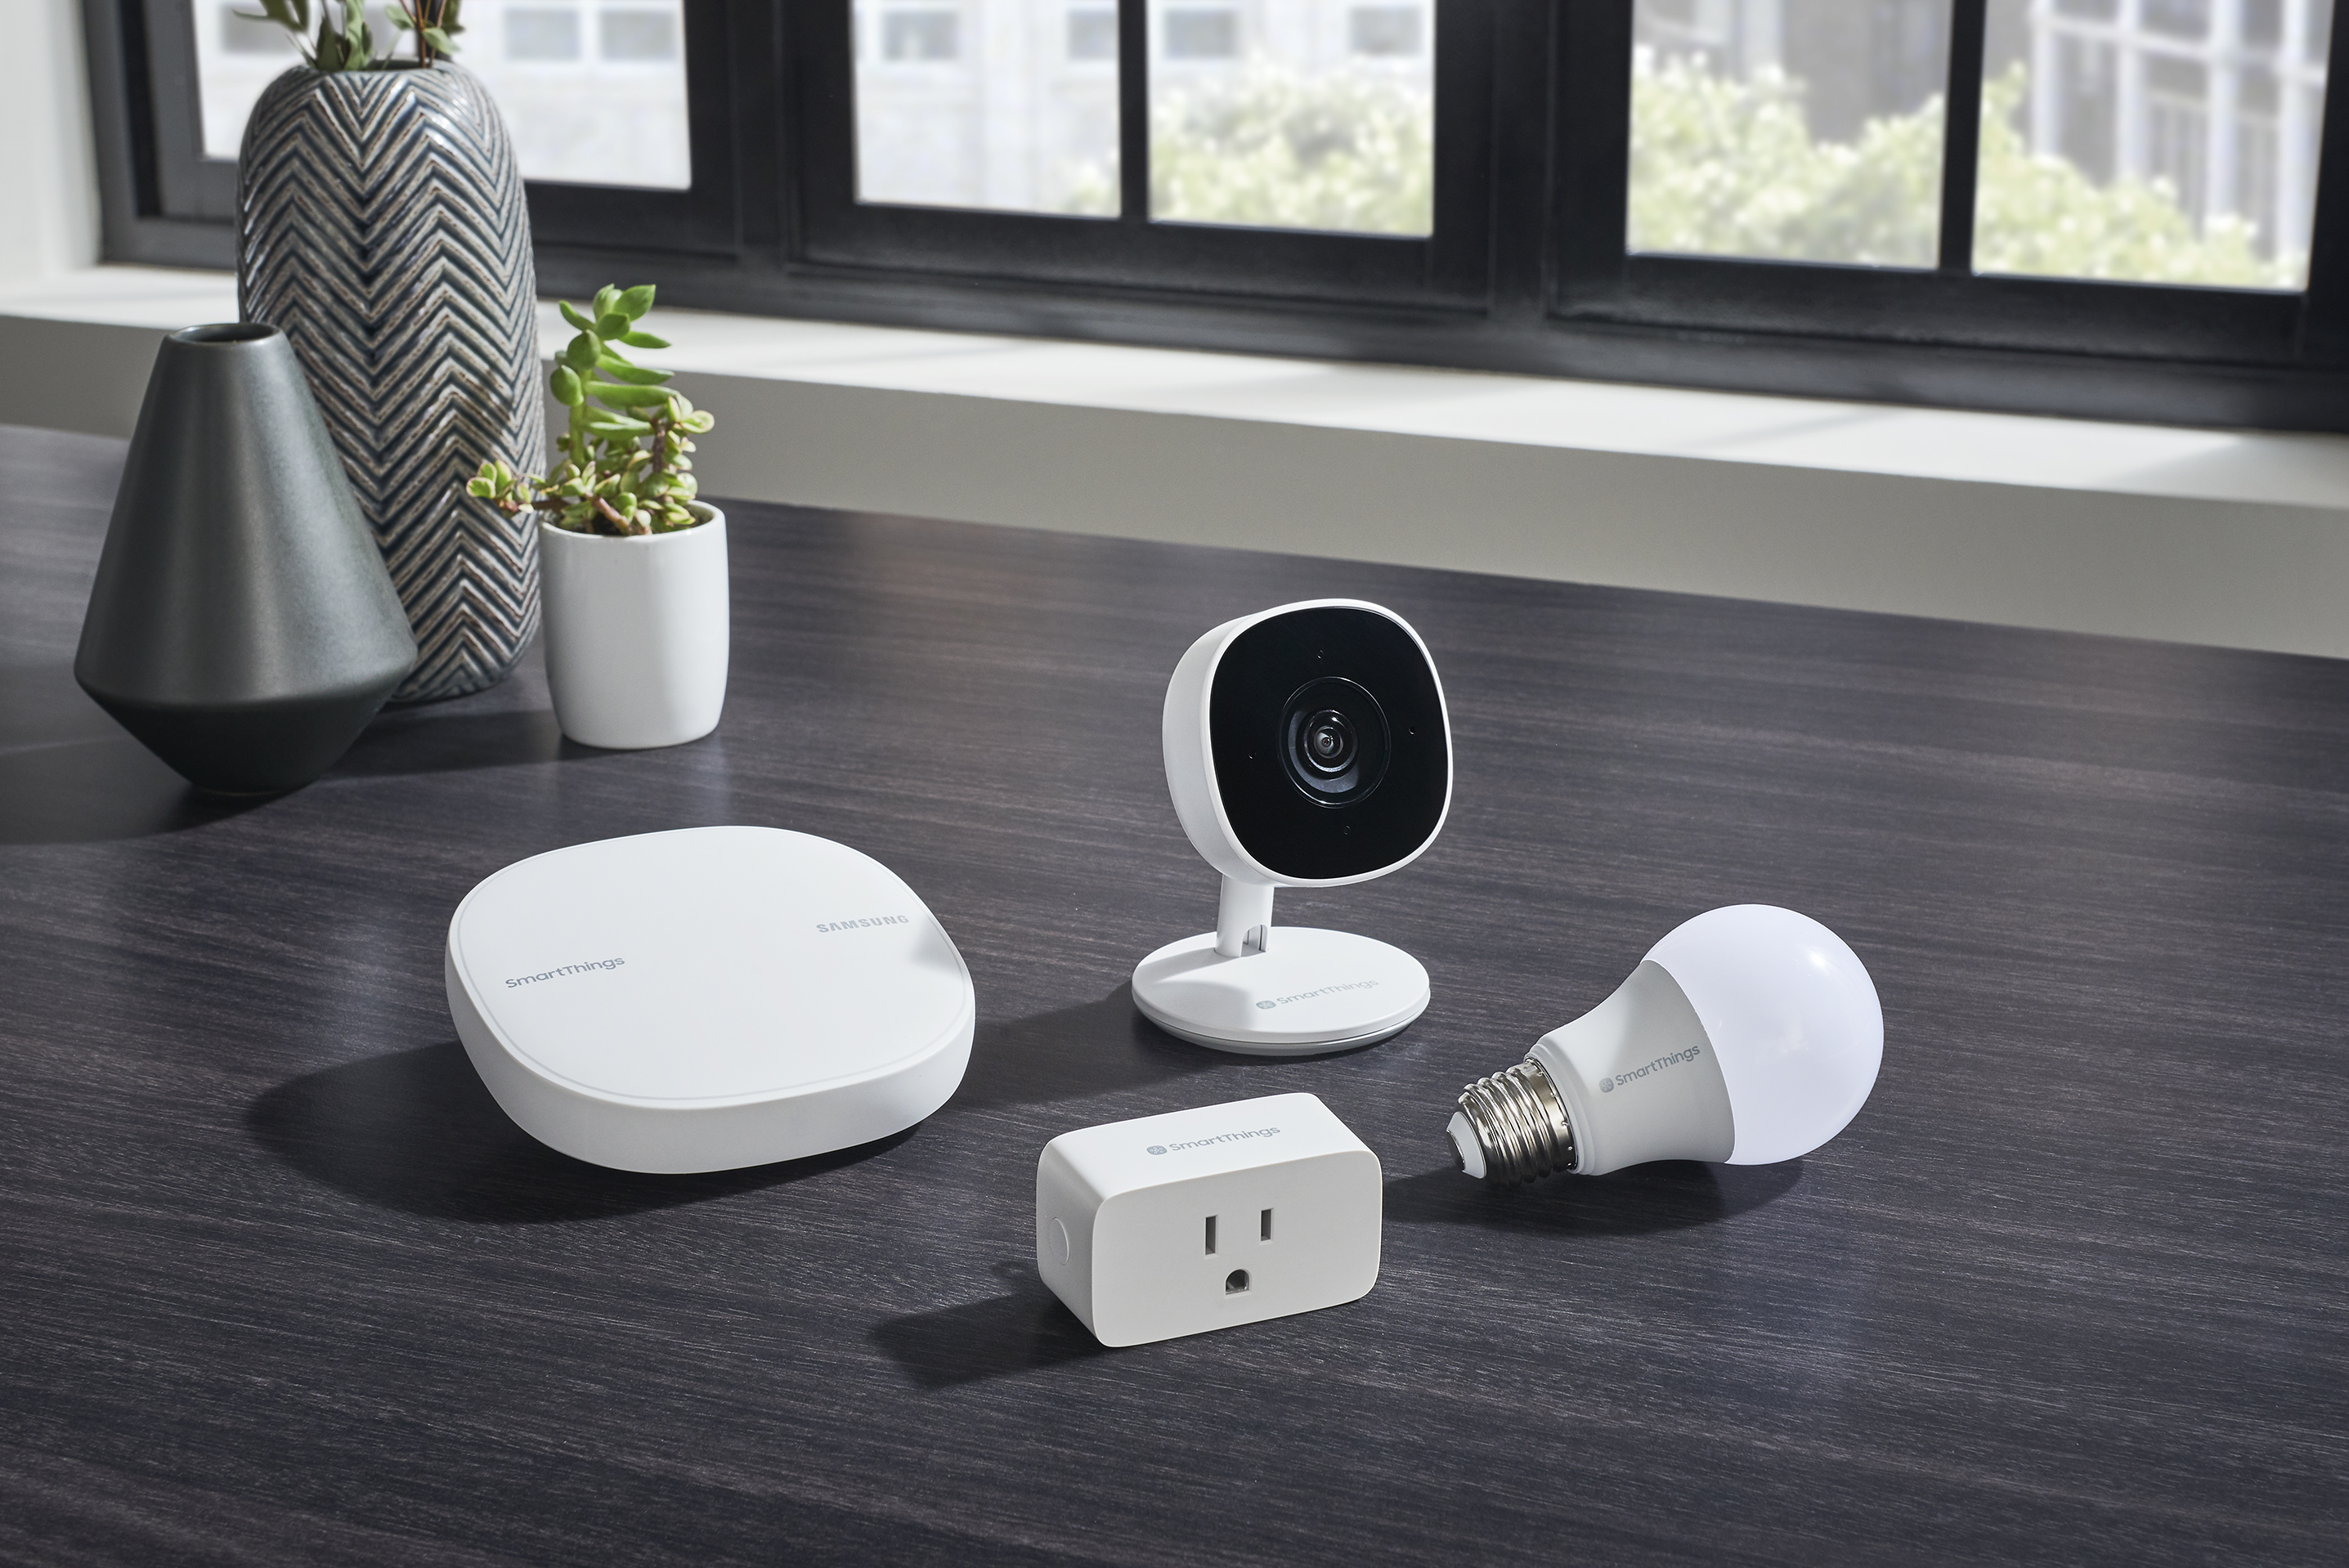 SmartThings Expands Home Monitoring with New Smart Camera and Brings Wifi Smart Plug and Smart Bulb to Platform